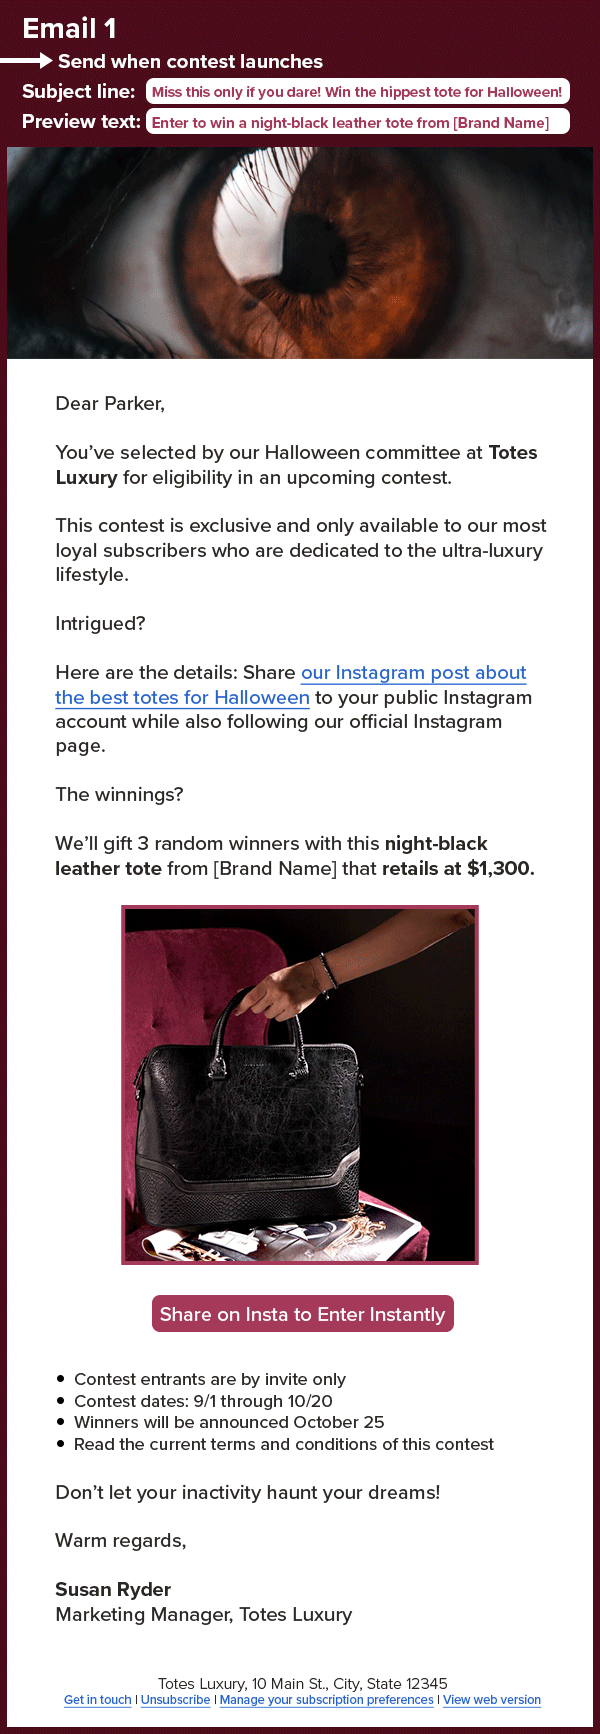 An email with an image of a black leather bag that reads: Email 1 Send when contest launches Subject line: Miss this only if you dare! Win the hippest tote for Halloween! Preview text: Enter to win a night-black leather tote from [Brand Name] Dear Parker, You've selected by our Halloween committee at Totes Luxury for eligibility in an upcoming contest. This contest is exclusive and only available to our most loyal subscribers who are dedicated to the ultra-luxury lifestyle. Intrigued? Here are the details: Share our Instagram post about the best totes for Halloween to your public Instagram account while also following our official Instagram page. The winnings? We'll gift 3 random winners with this night-black leather tote from [Brand Name] that retails at $1,300. Share on Insta to Enter Instantly Contest entrants are by invite only. Contest dates: 9/1 through 10/20. Winners will be announced October 25. Read the current terms and conditions of this contest. Don't let your inactivity haunt your dreams! Warm regards, Susan Ryder Marketing Manager, Totes Luxury